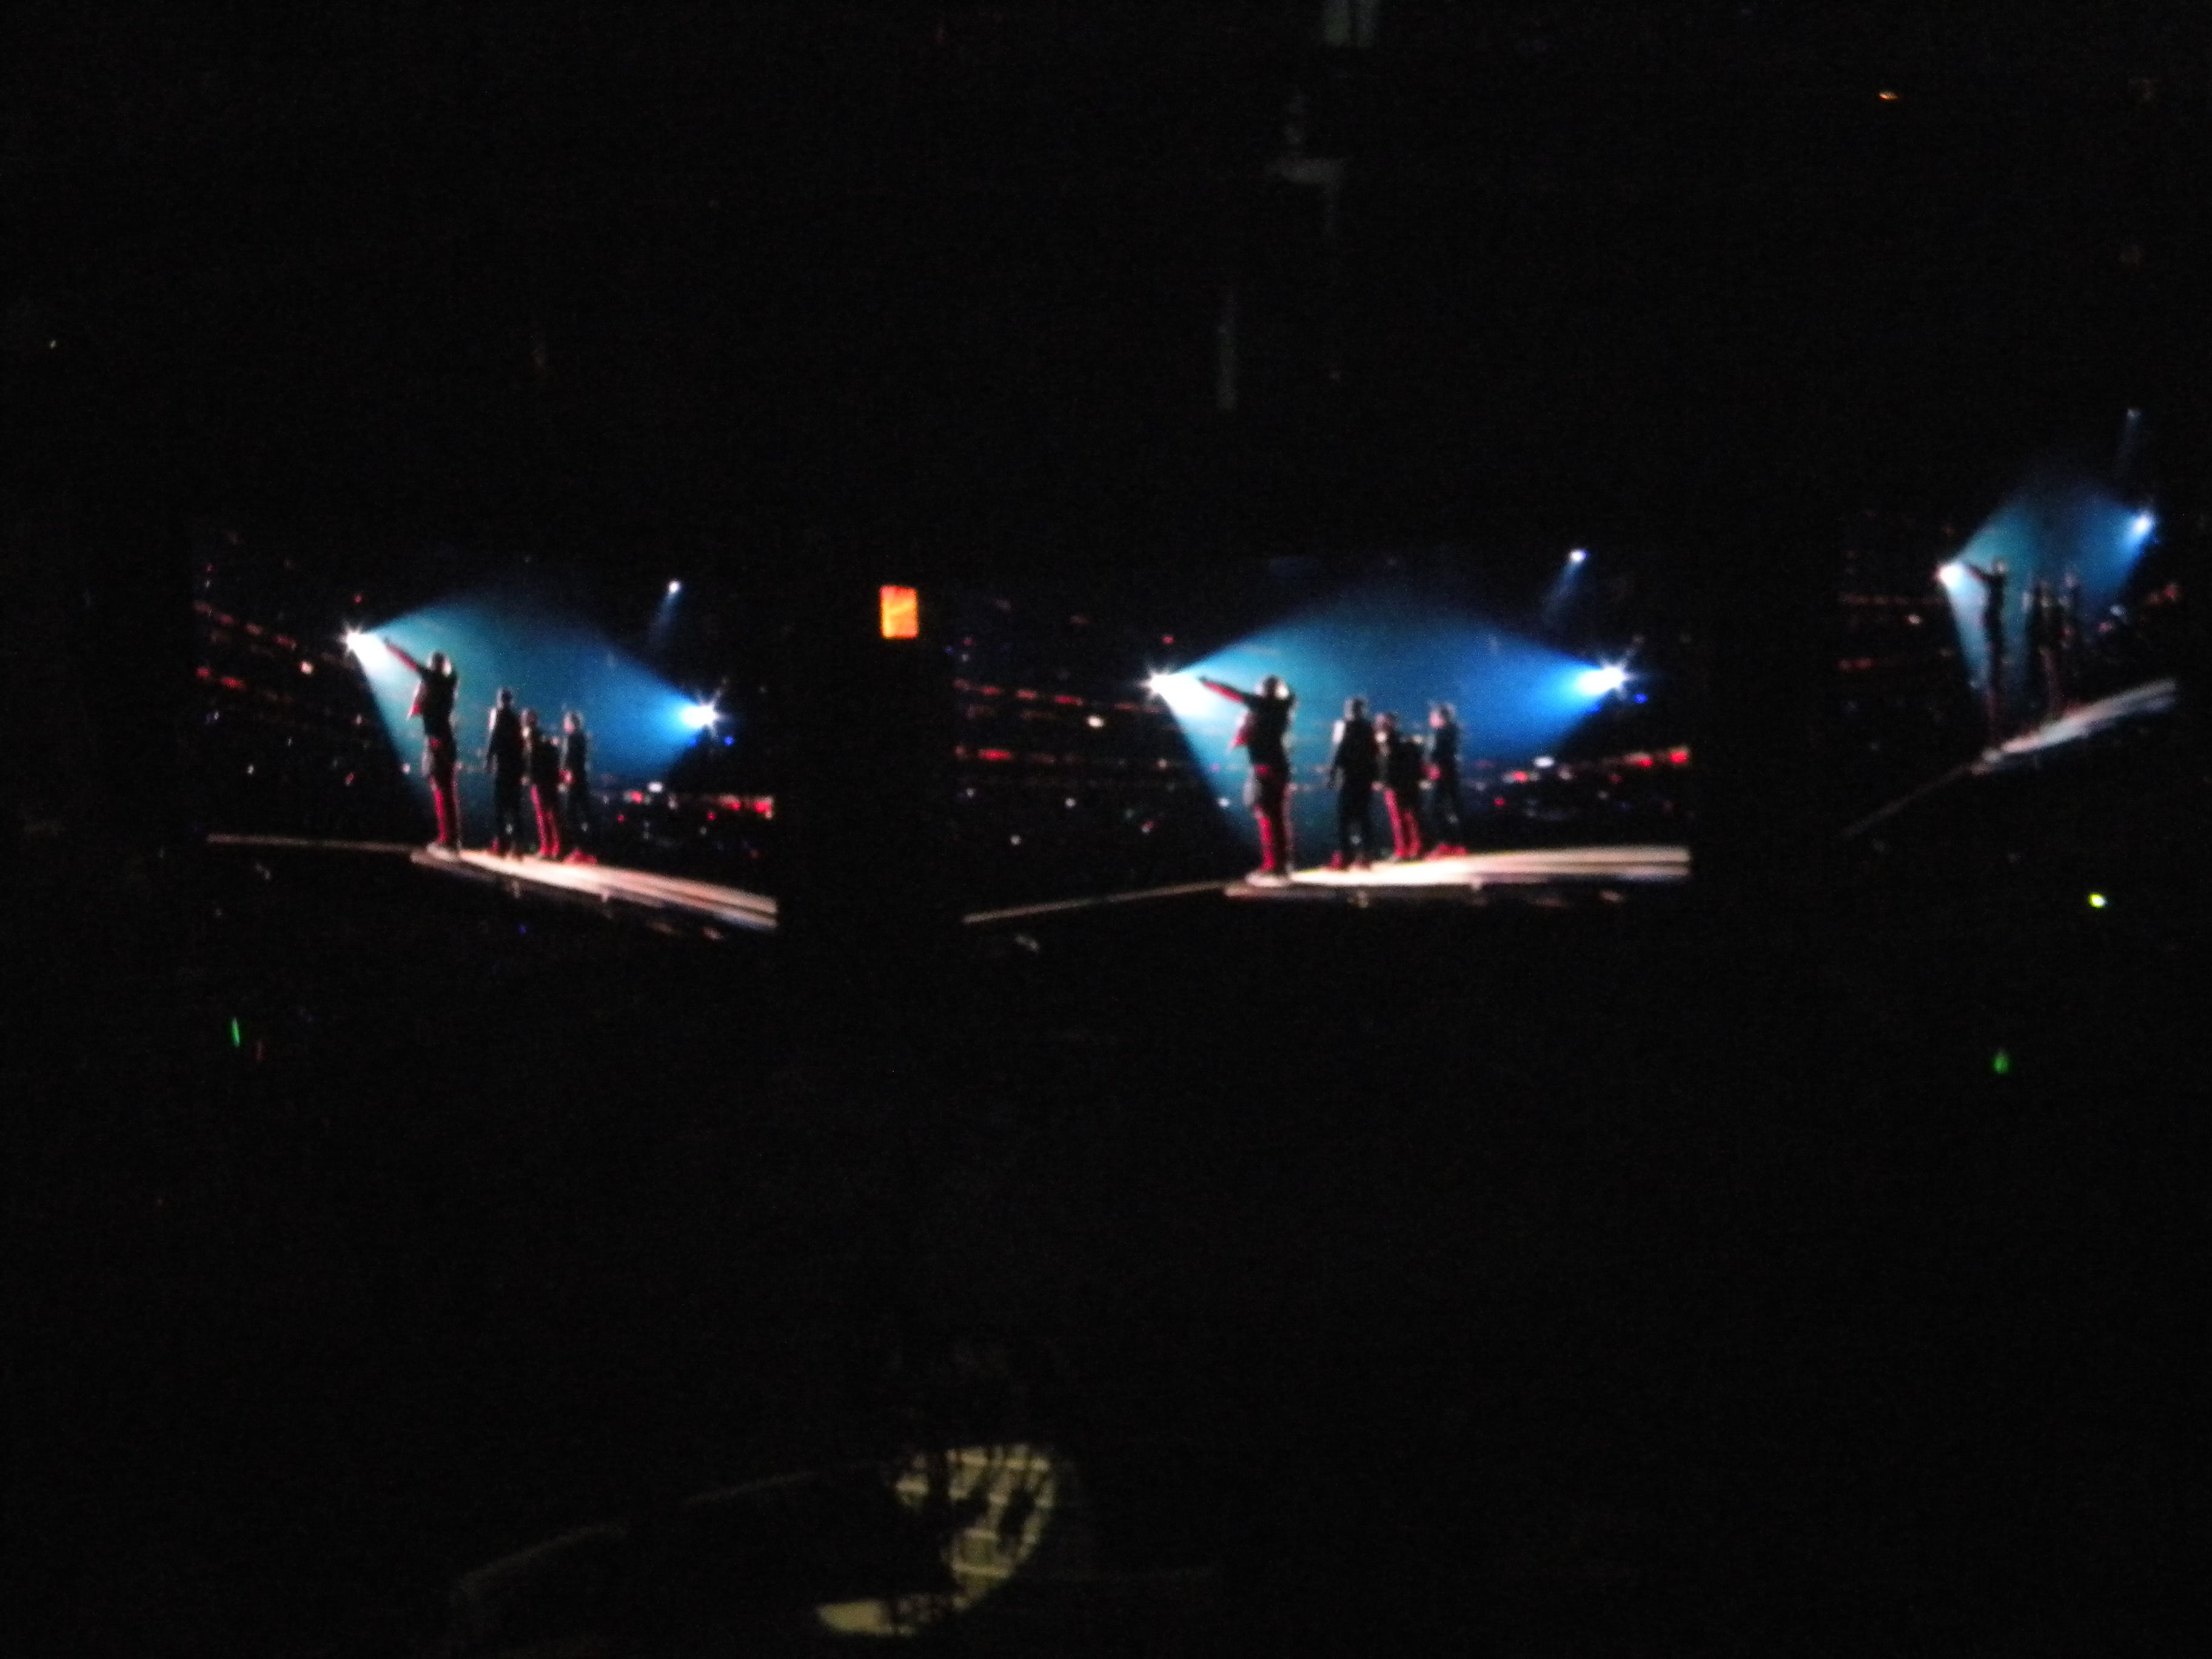 Big Time Rush At The Houston Rodeo 3 4 12 Better With U Tour Best Night Of My Life Best Night Of My Life Big Time Rush Houston Rodeo